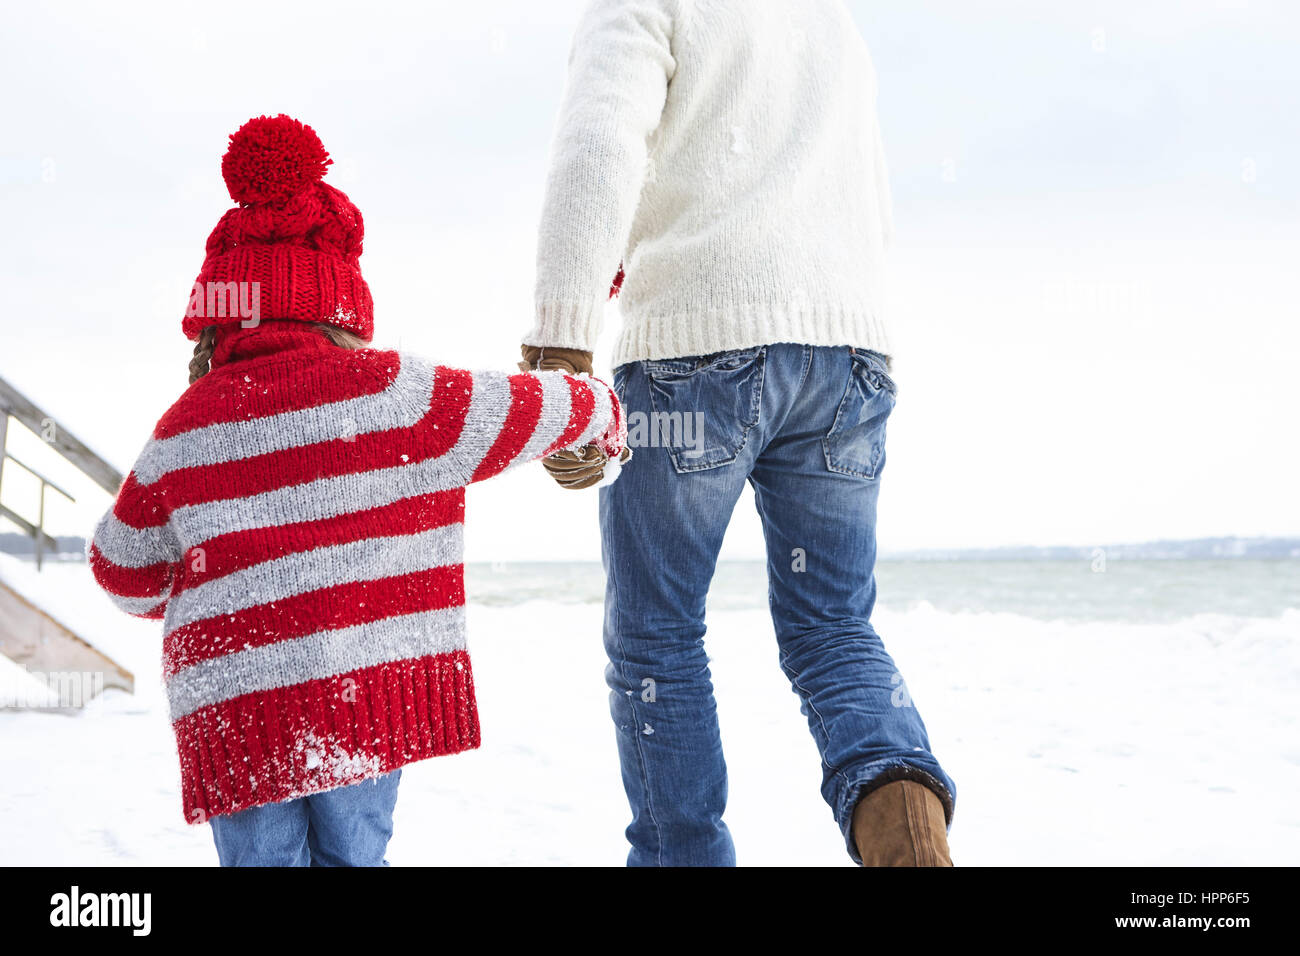 Father and daughter walking in the snow, rear view - Stock Image